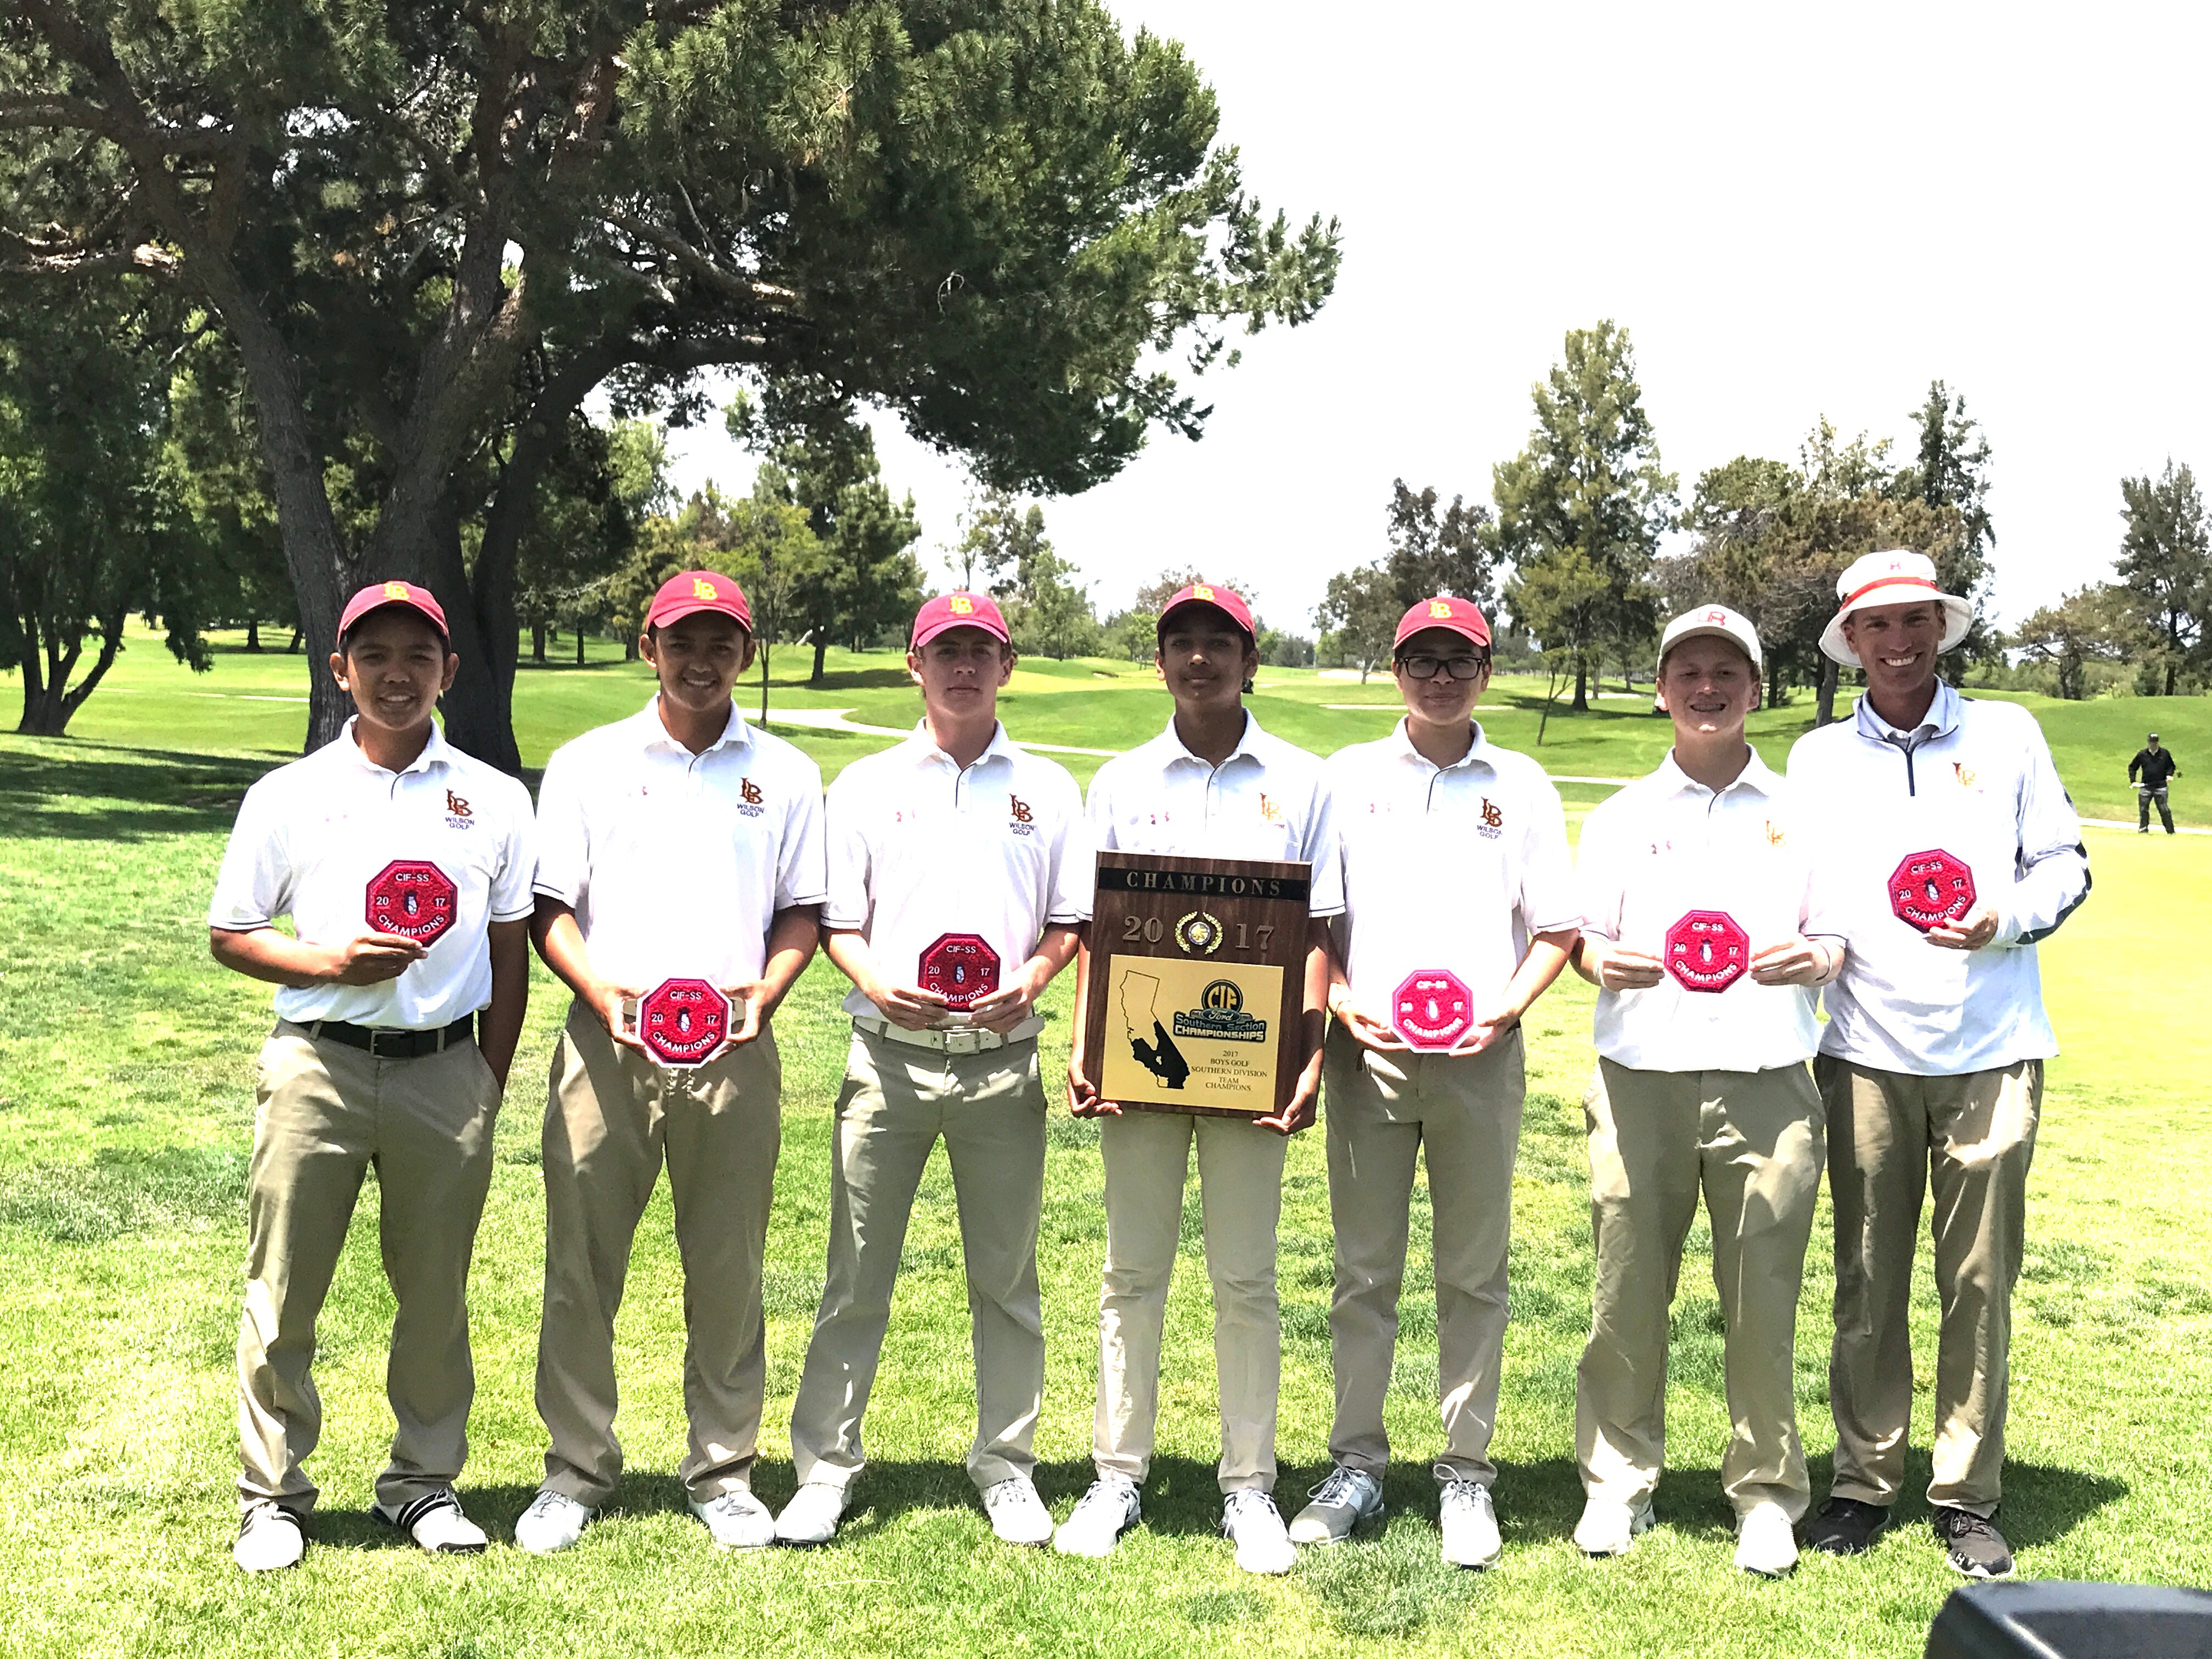 2017 CIF Southern Division Champions